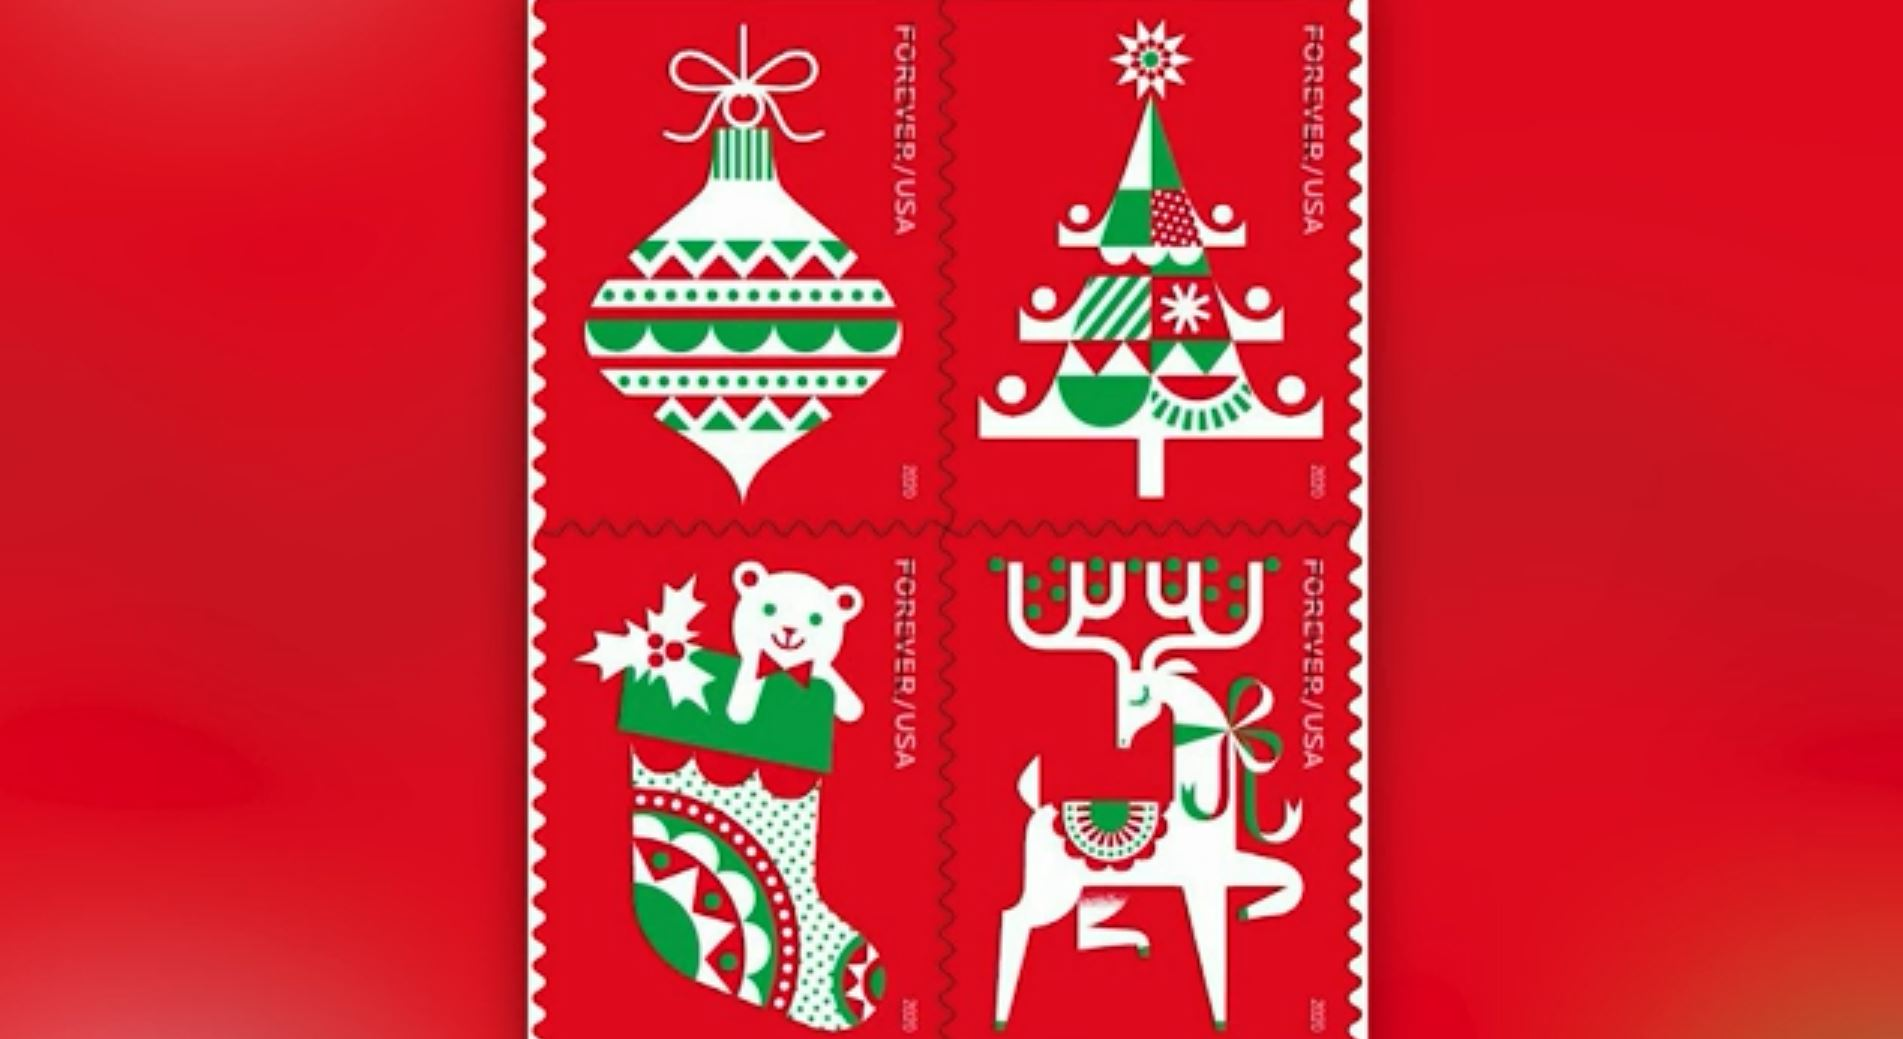 Christmas 2020 Stamps U.S. Postal Service unveiled five new forever stamps | WHNT.com